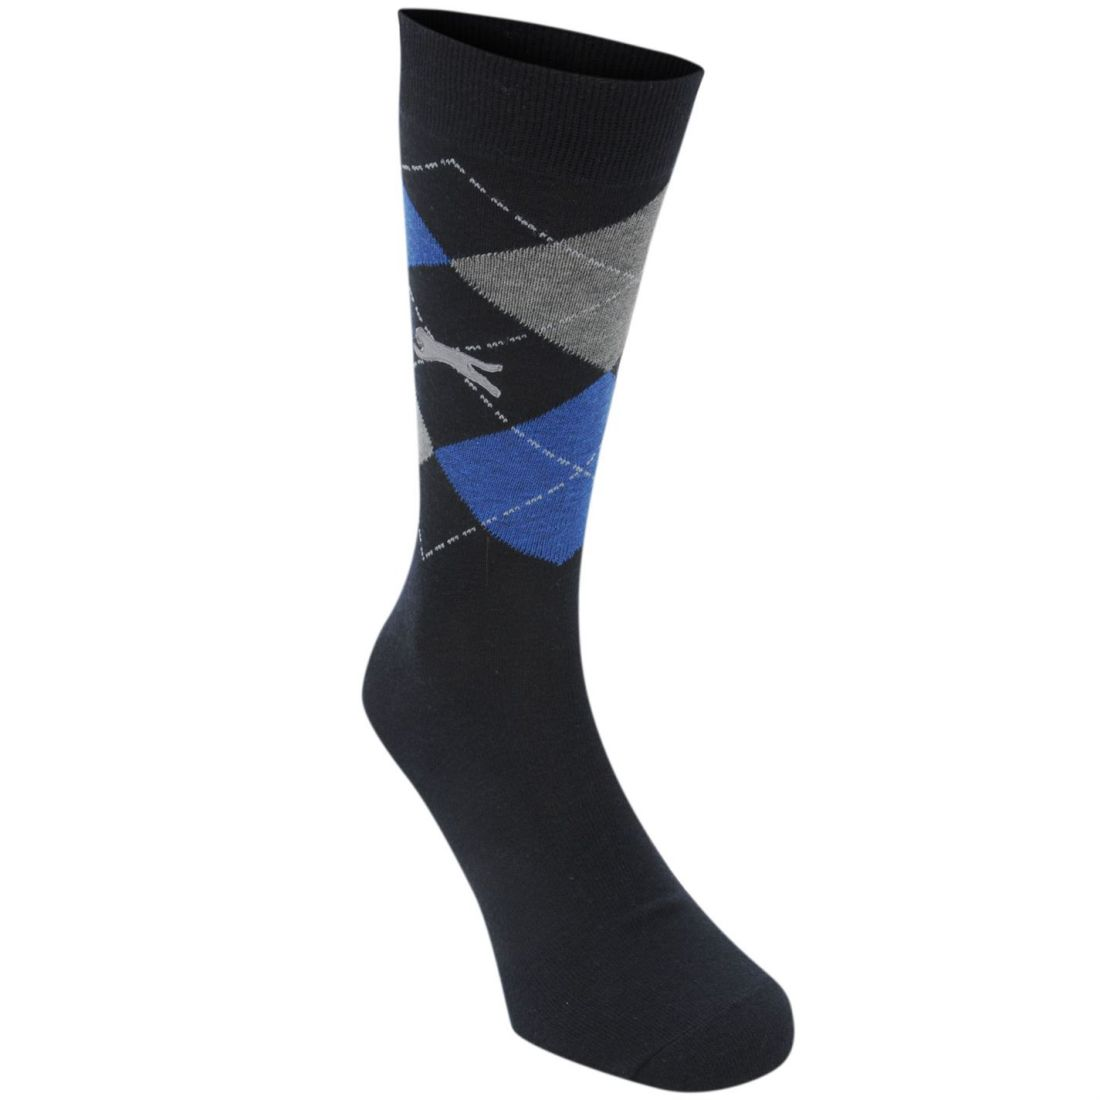 62726832e Image is loading Slazenger-Argyle-Golf-Socks-3-Pack-Mens-Gents-